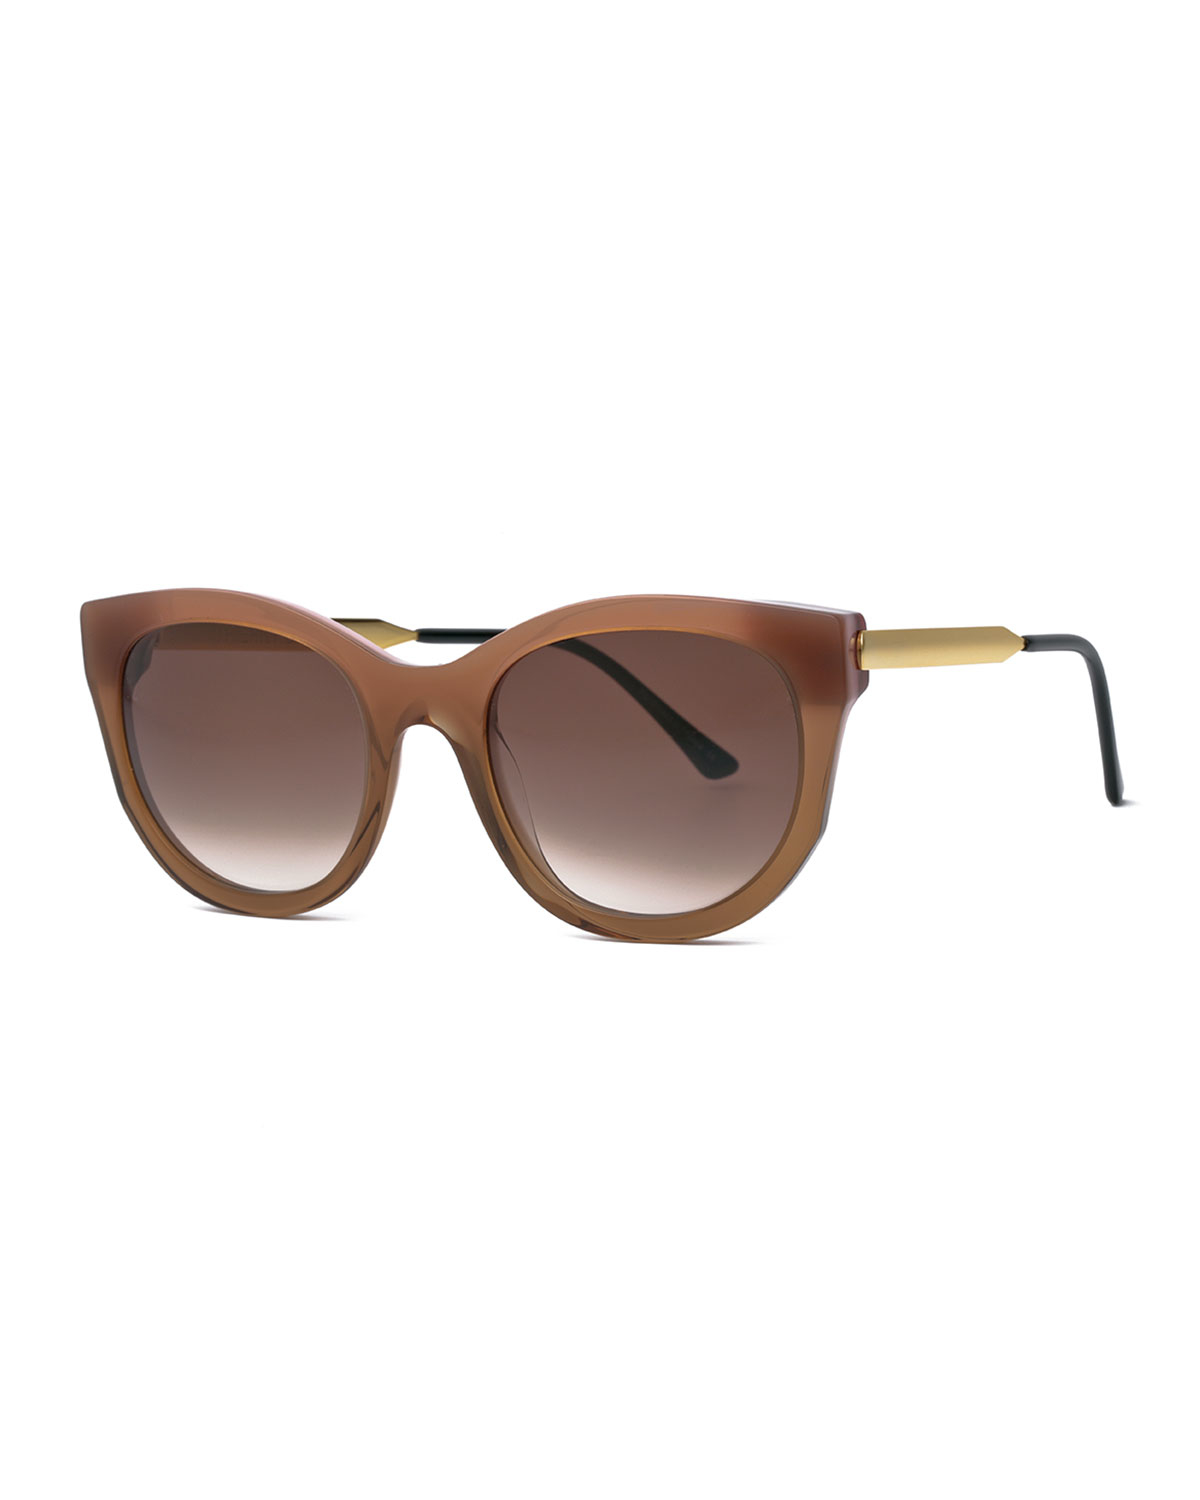 Thierry lasry Lively Cat-eye Sunglasses in Brown